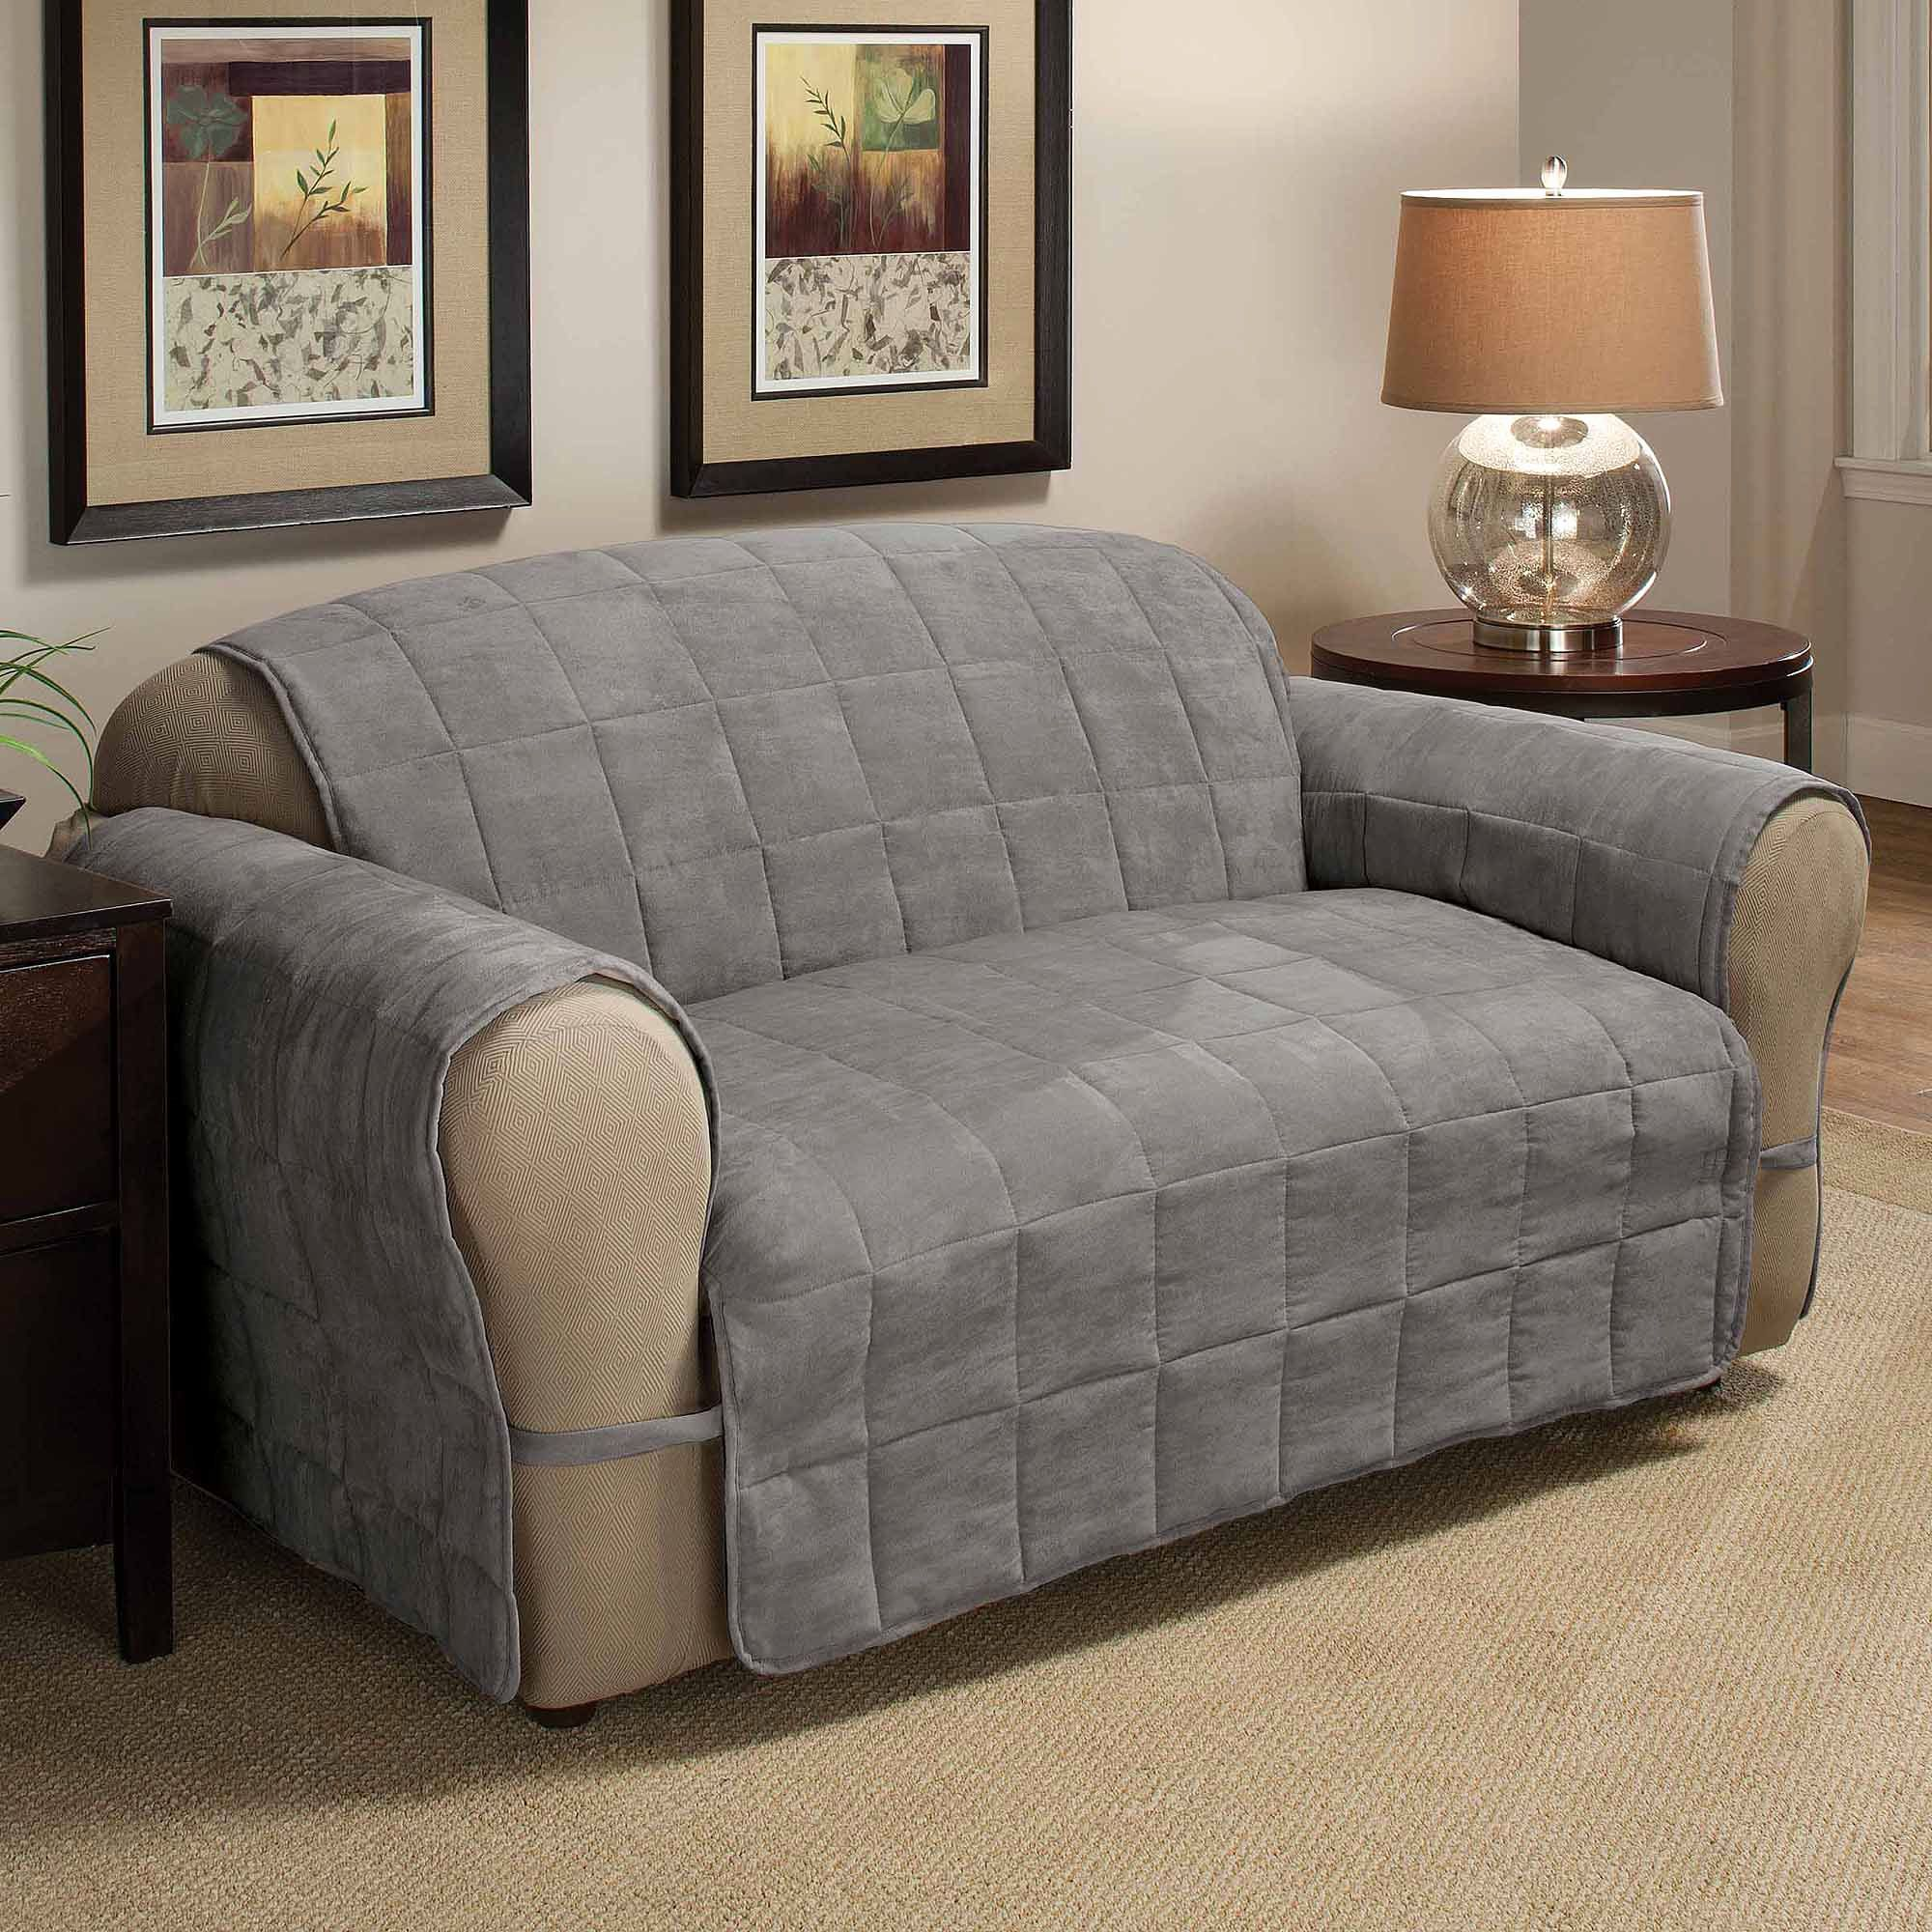 Good Pet Sofa Cover That Stays In Place Pics Pet Sofa Cover That